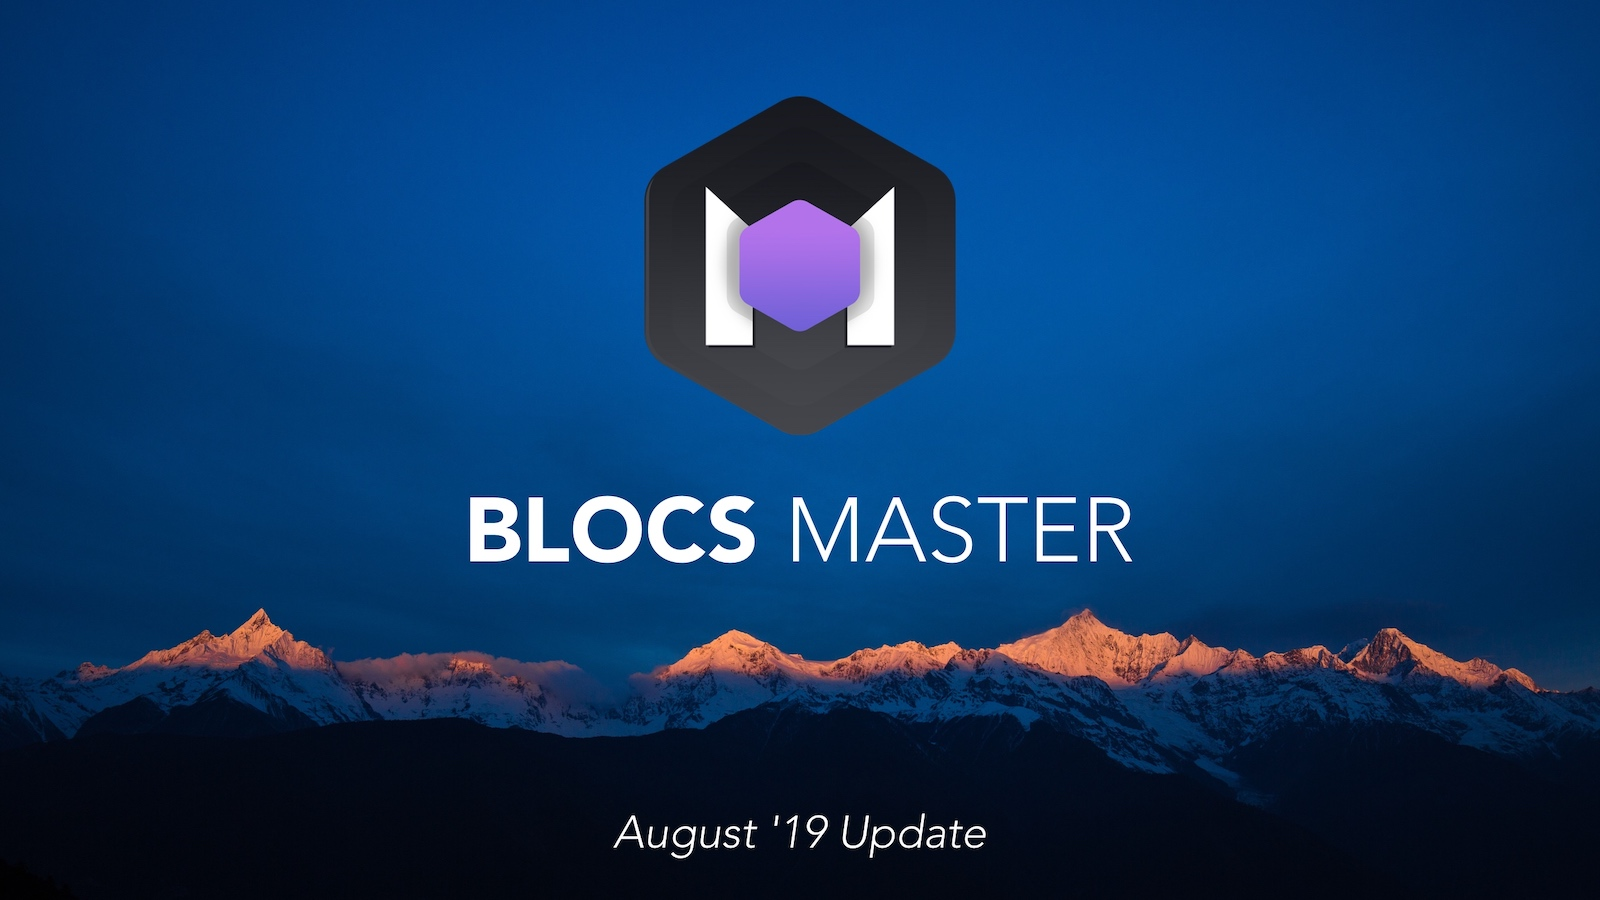 Blocs Master is the best resource for Blocs users.